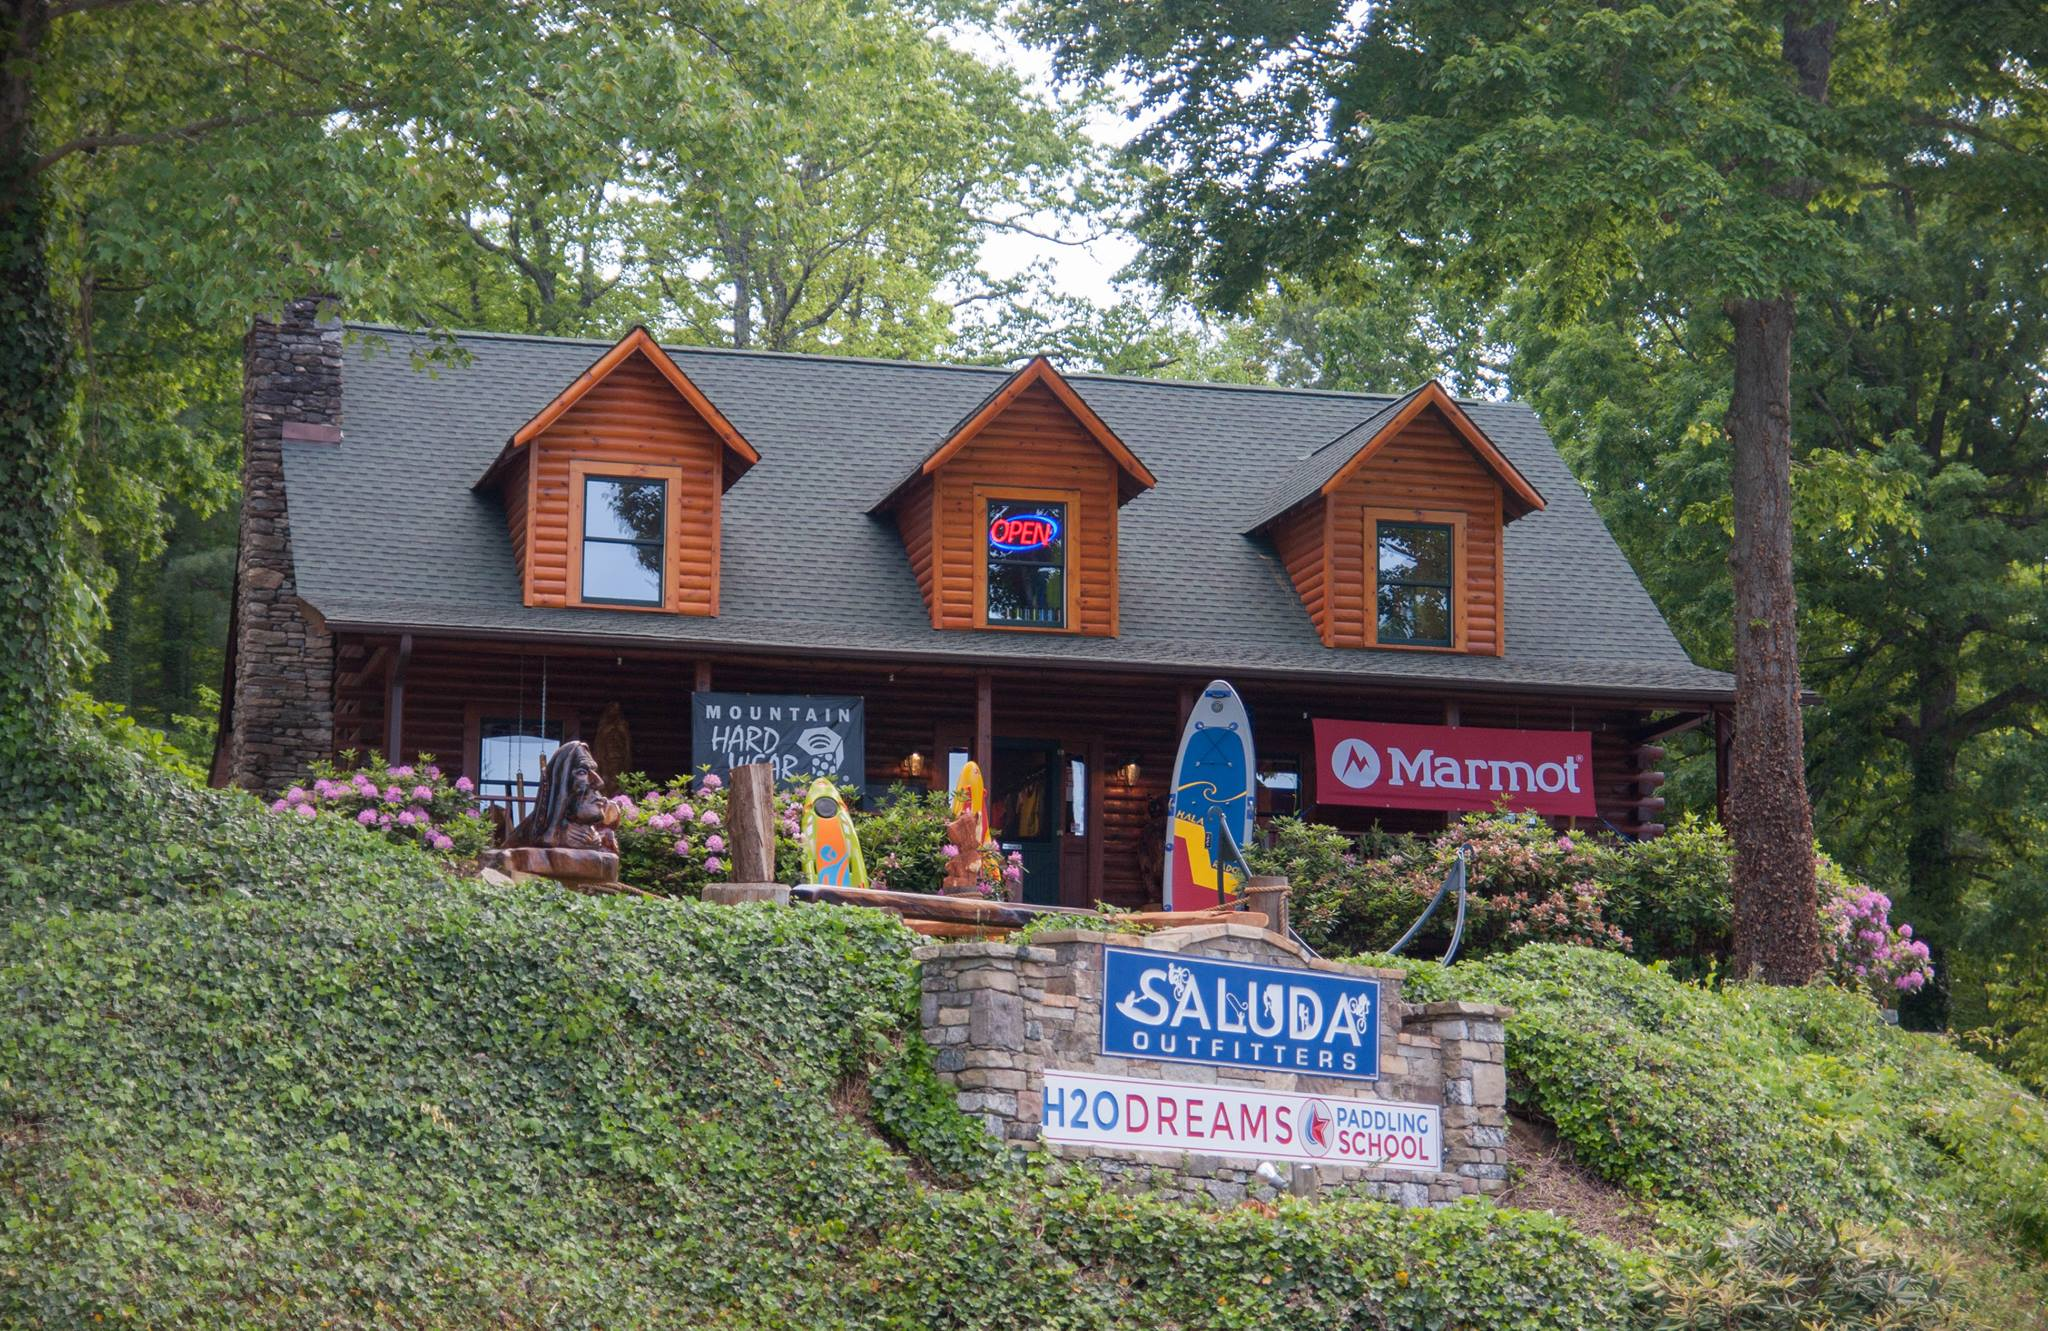 Saluda Outfitters